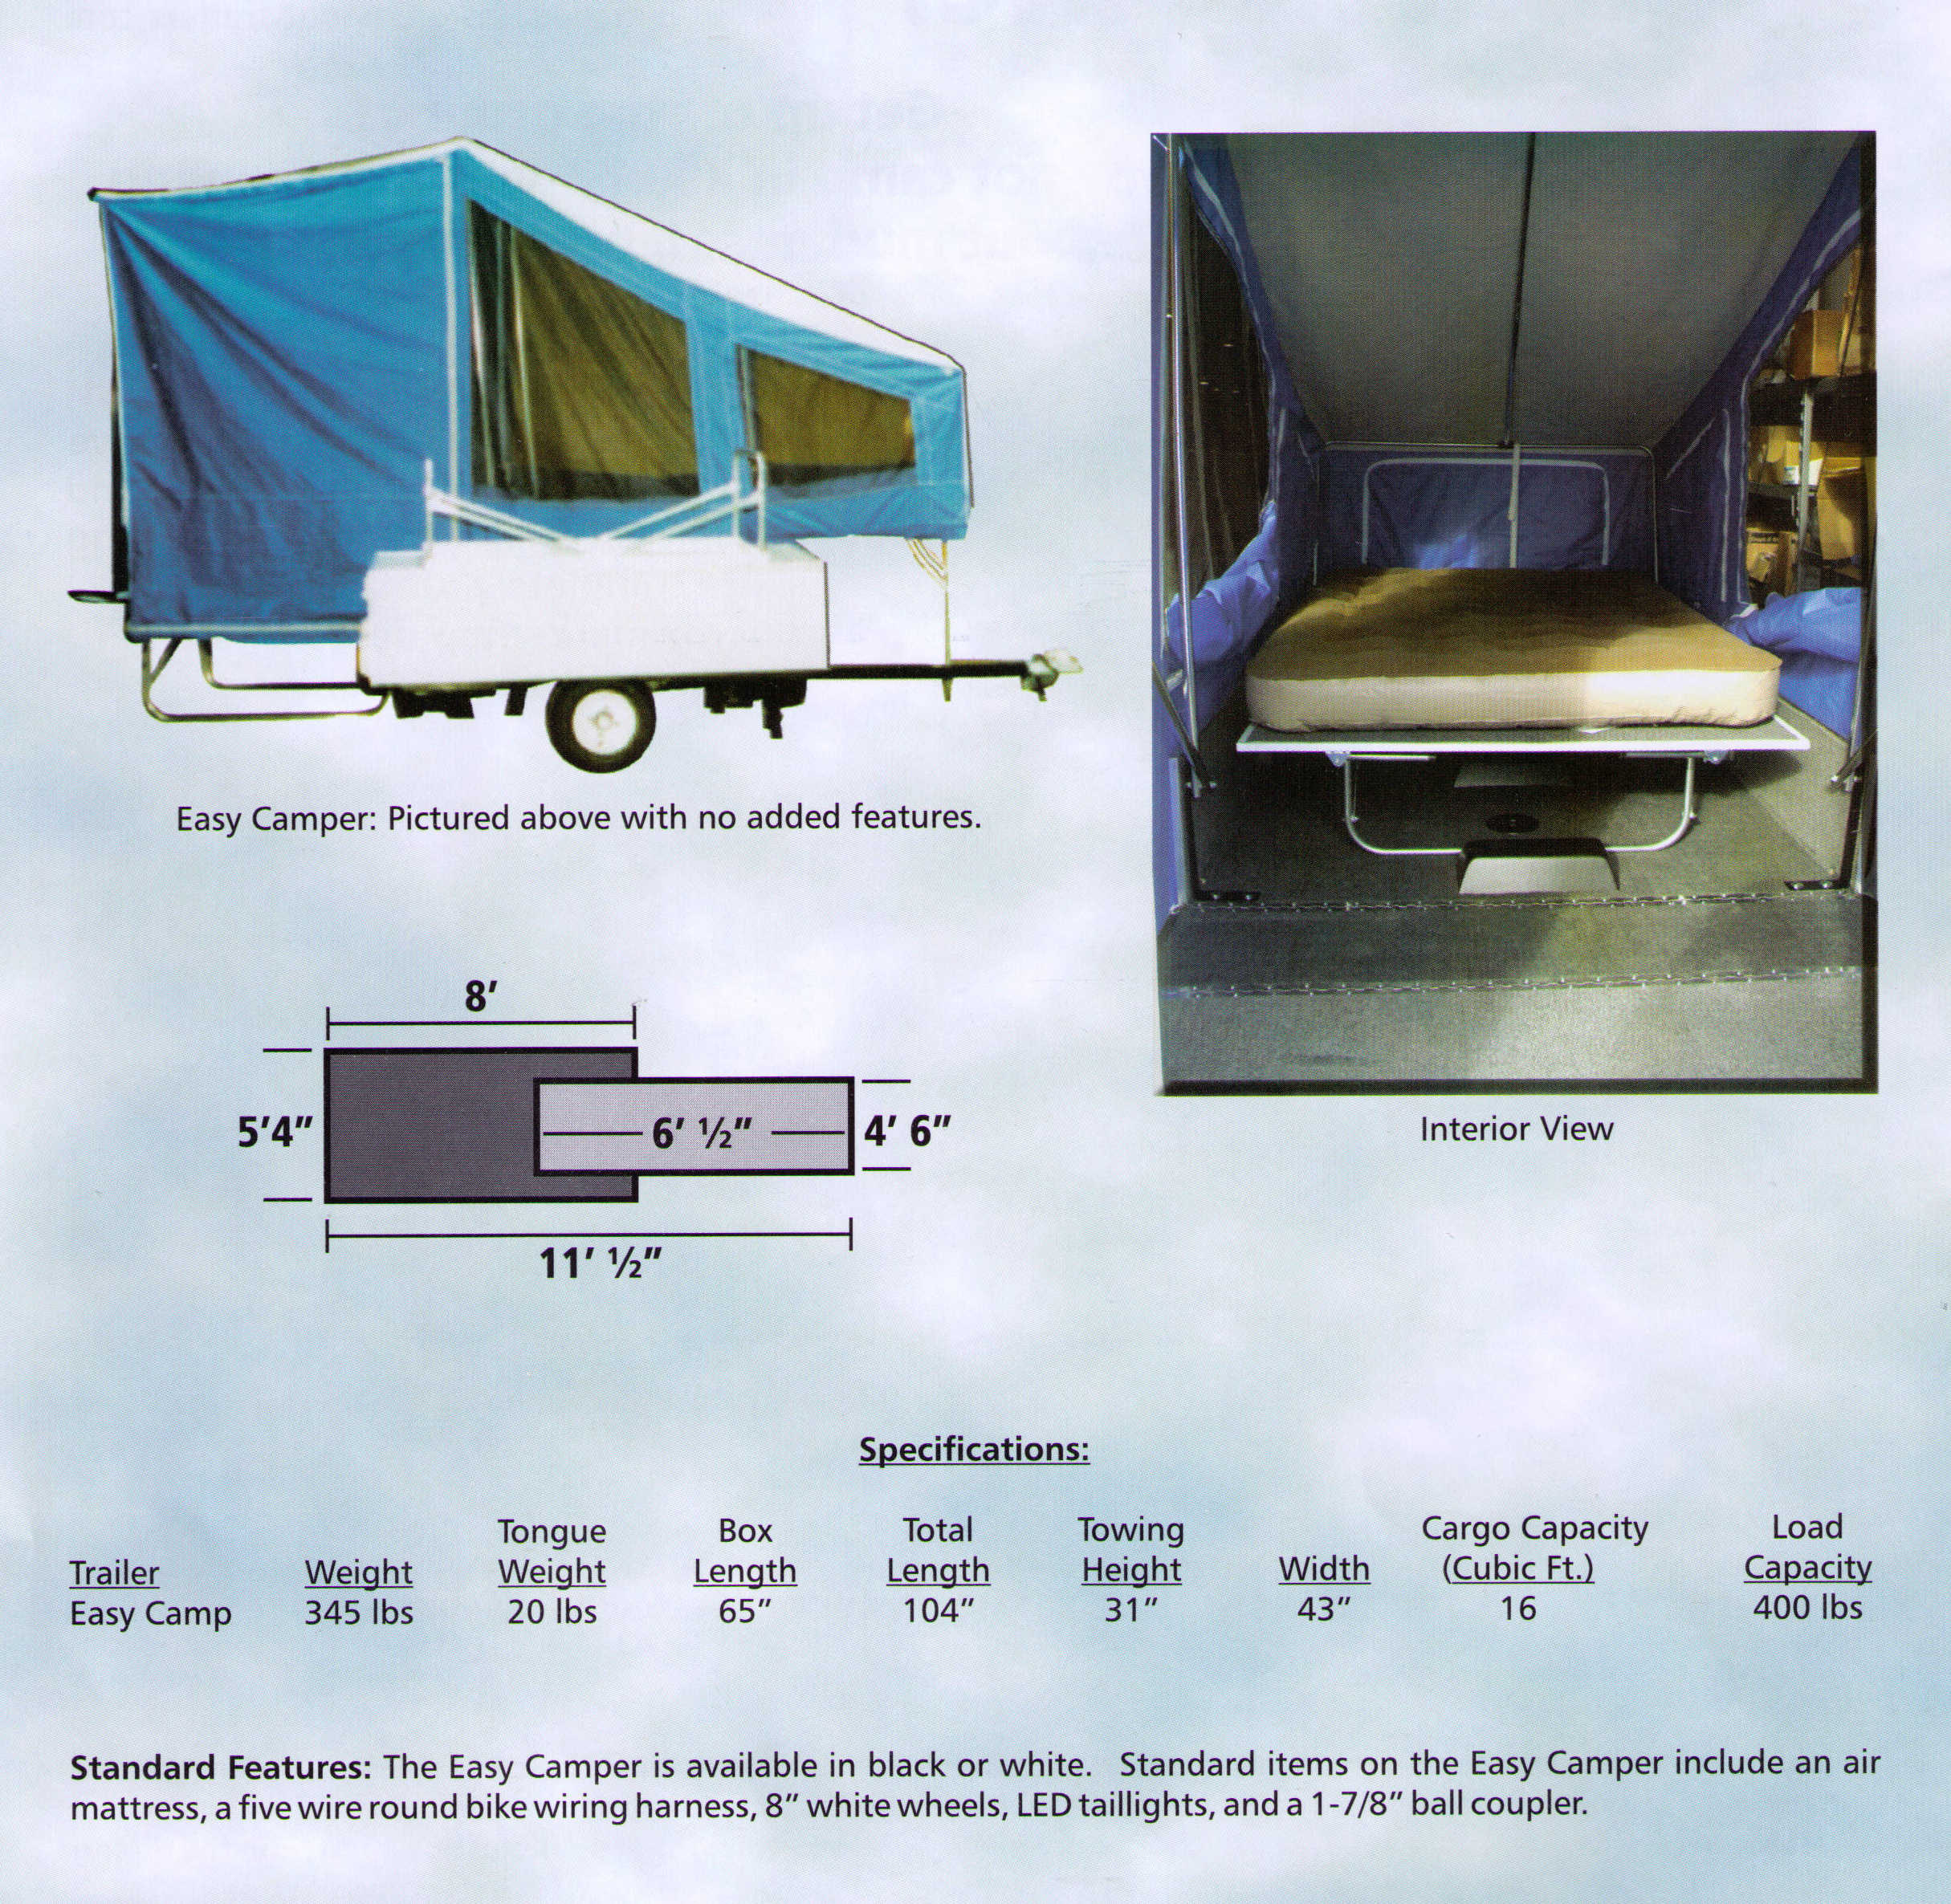 Specifications On The Easy Camper Model